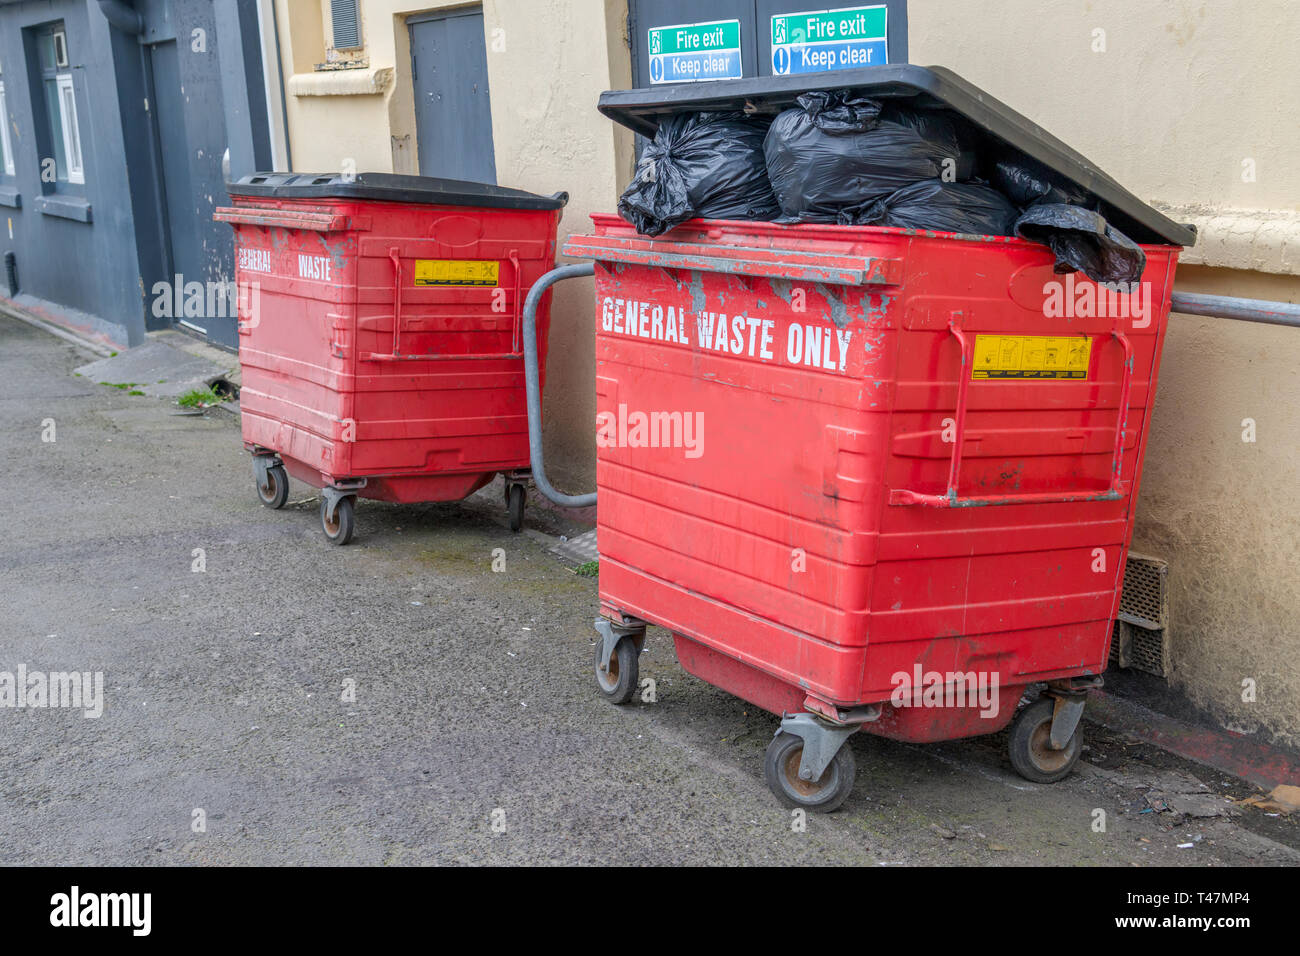 Two litter dumpsters guard the fire doors at the rear of a store premises. Stock Photo